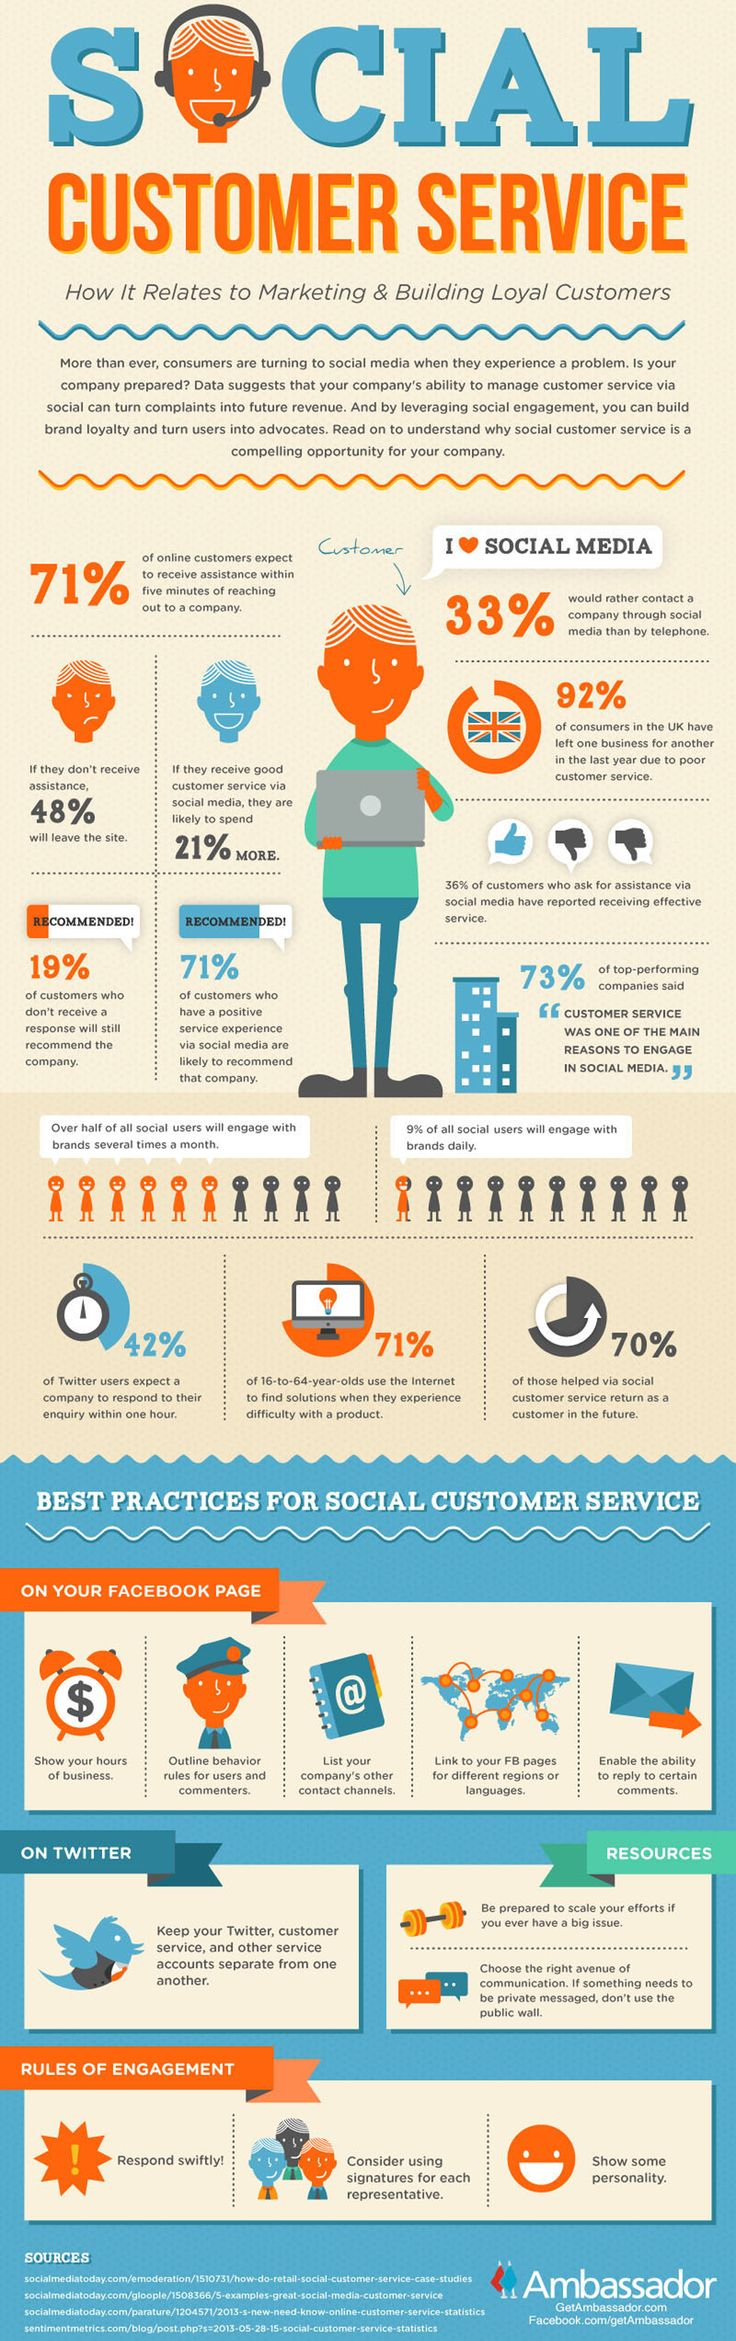 Social Customer Service, it's for big structures but it can surely help smaller businesses too.